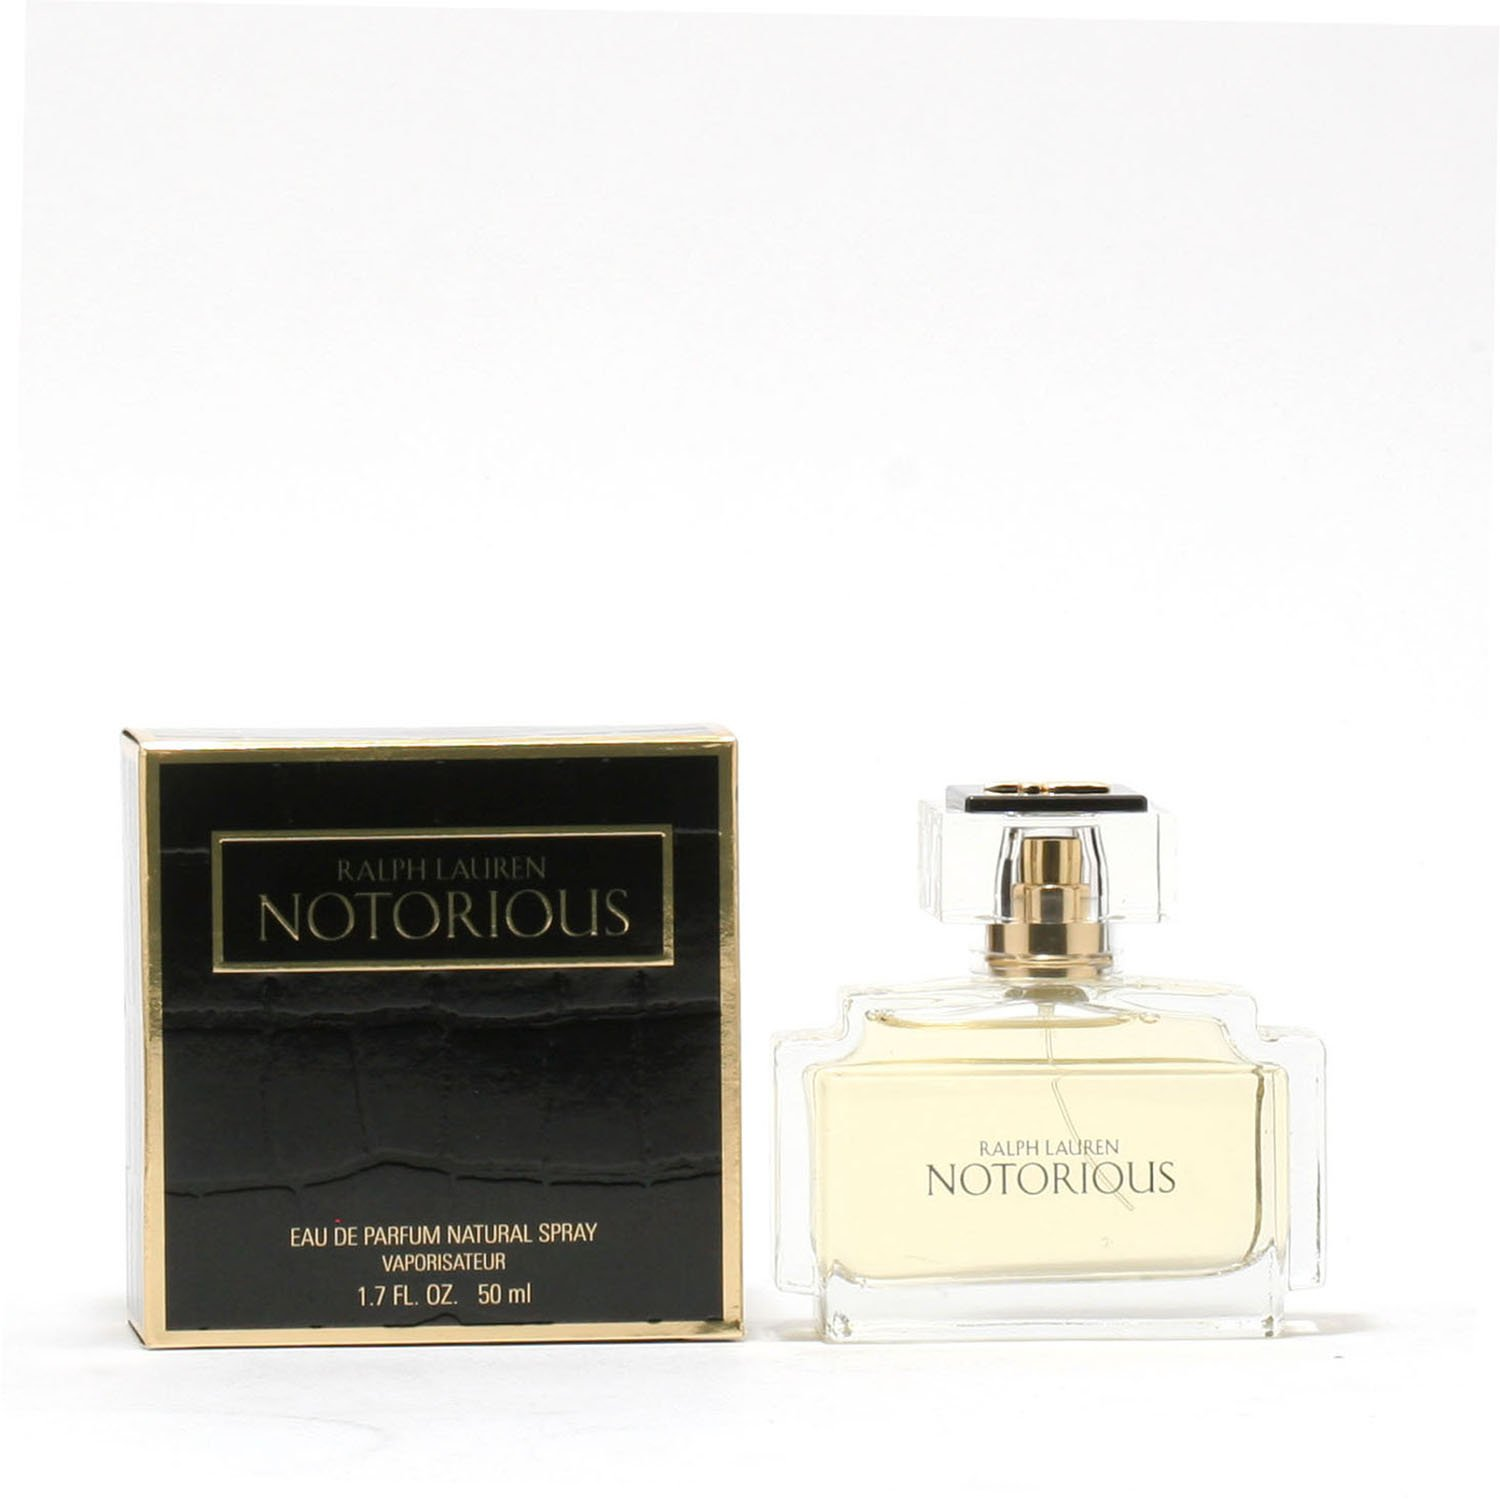 Perfume - NOTORIOUS FOR WOMEN BY RALPH LAUREN - EAU DE PARFUM SPRAY, 1.7 OZ